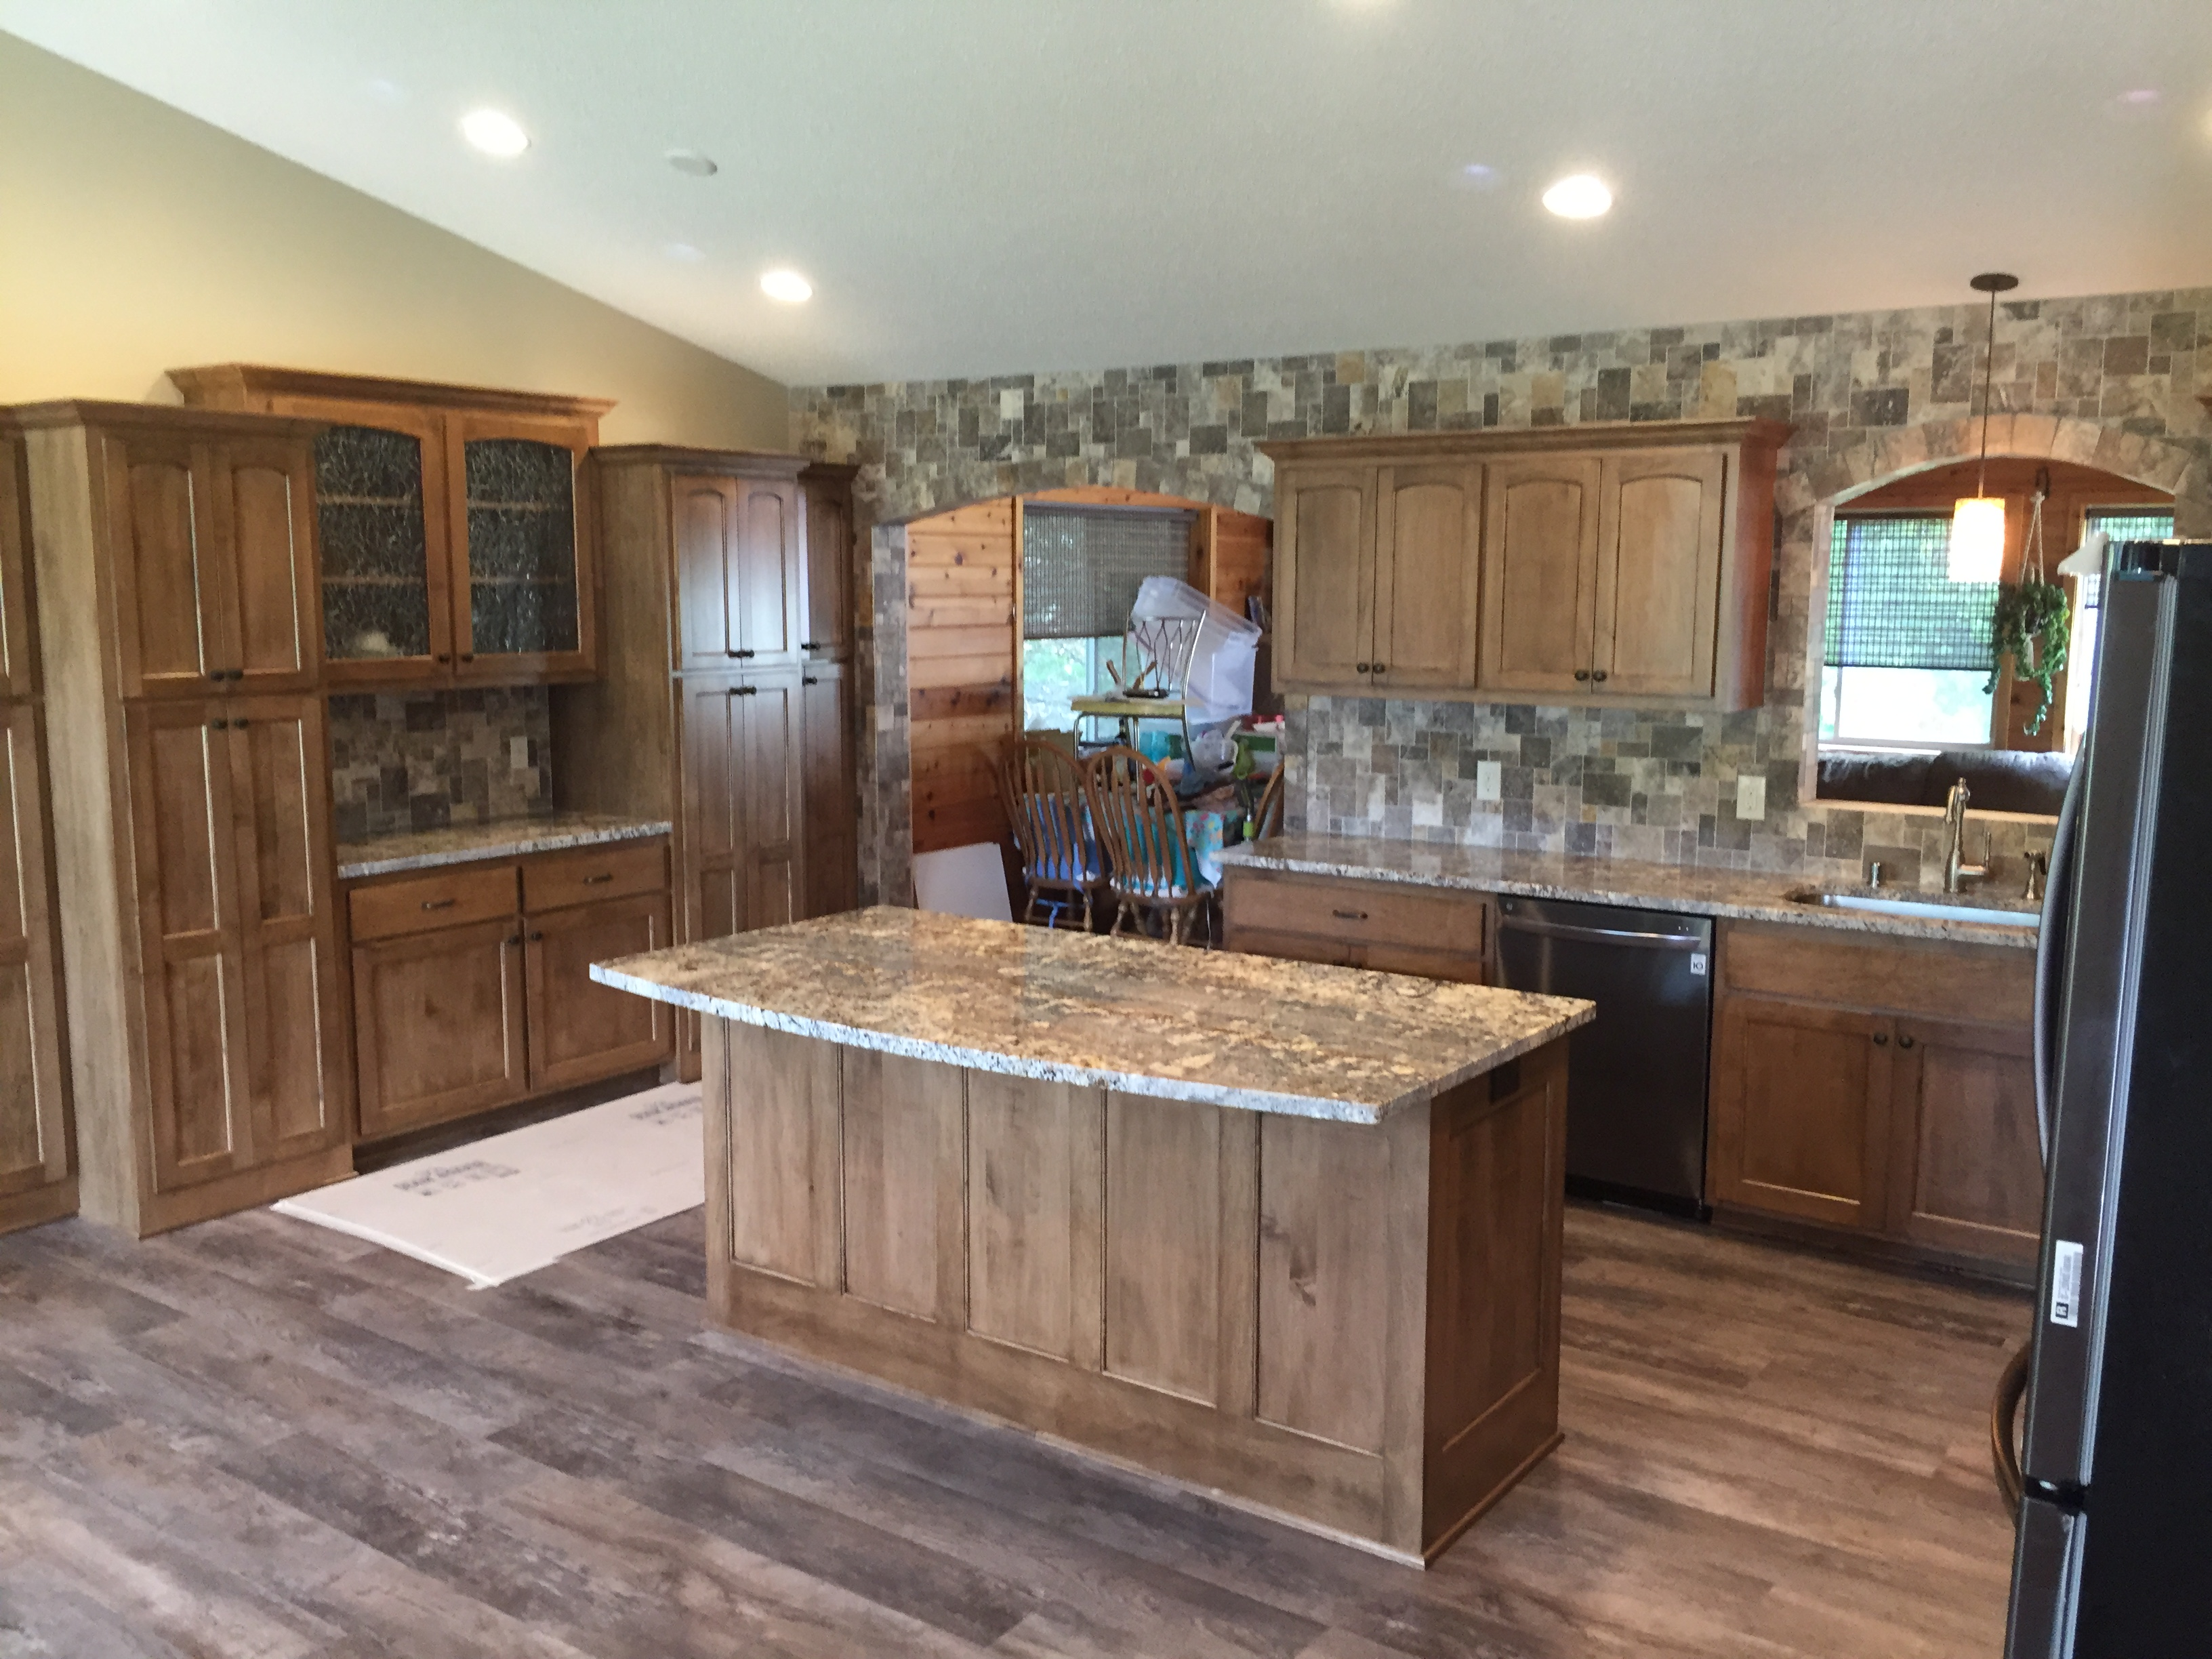 Superieur Home Design And Remodeling In Woodbury, MN